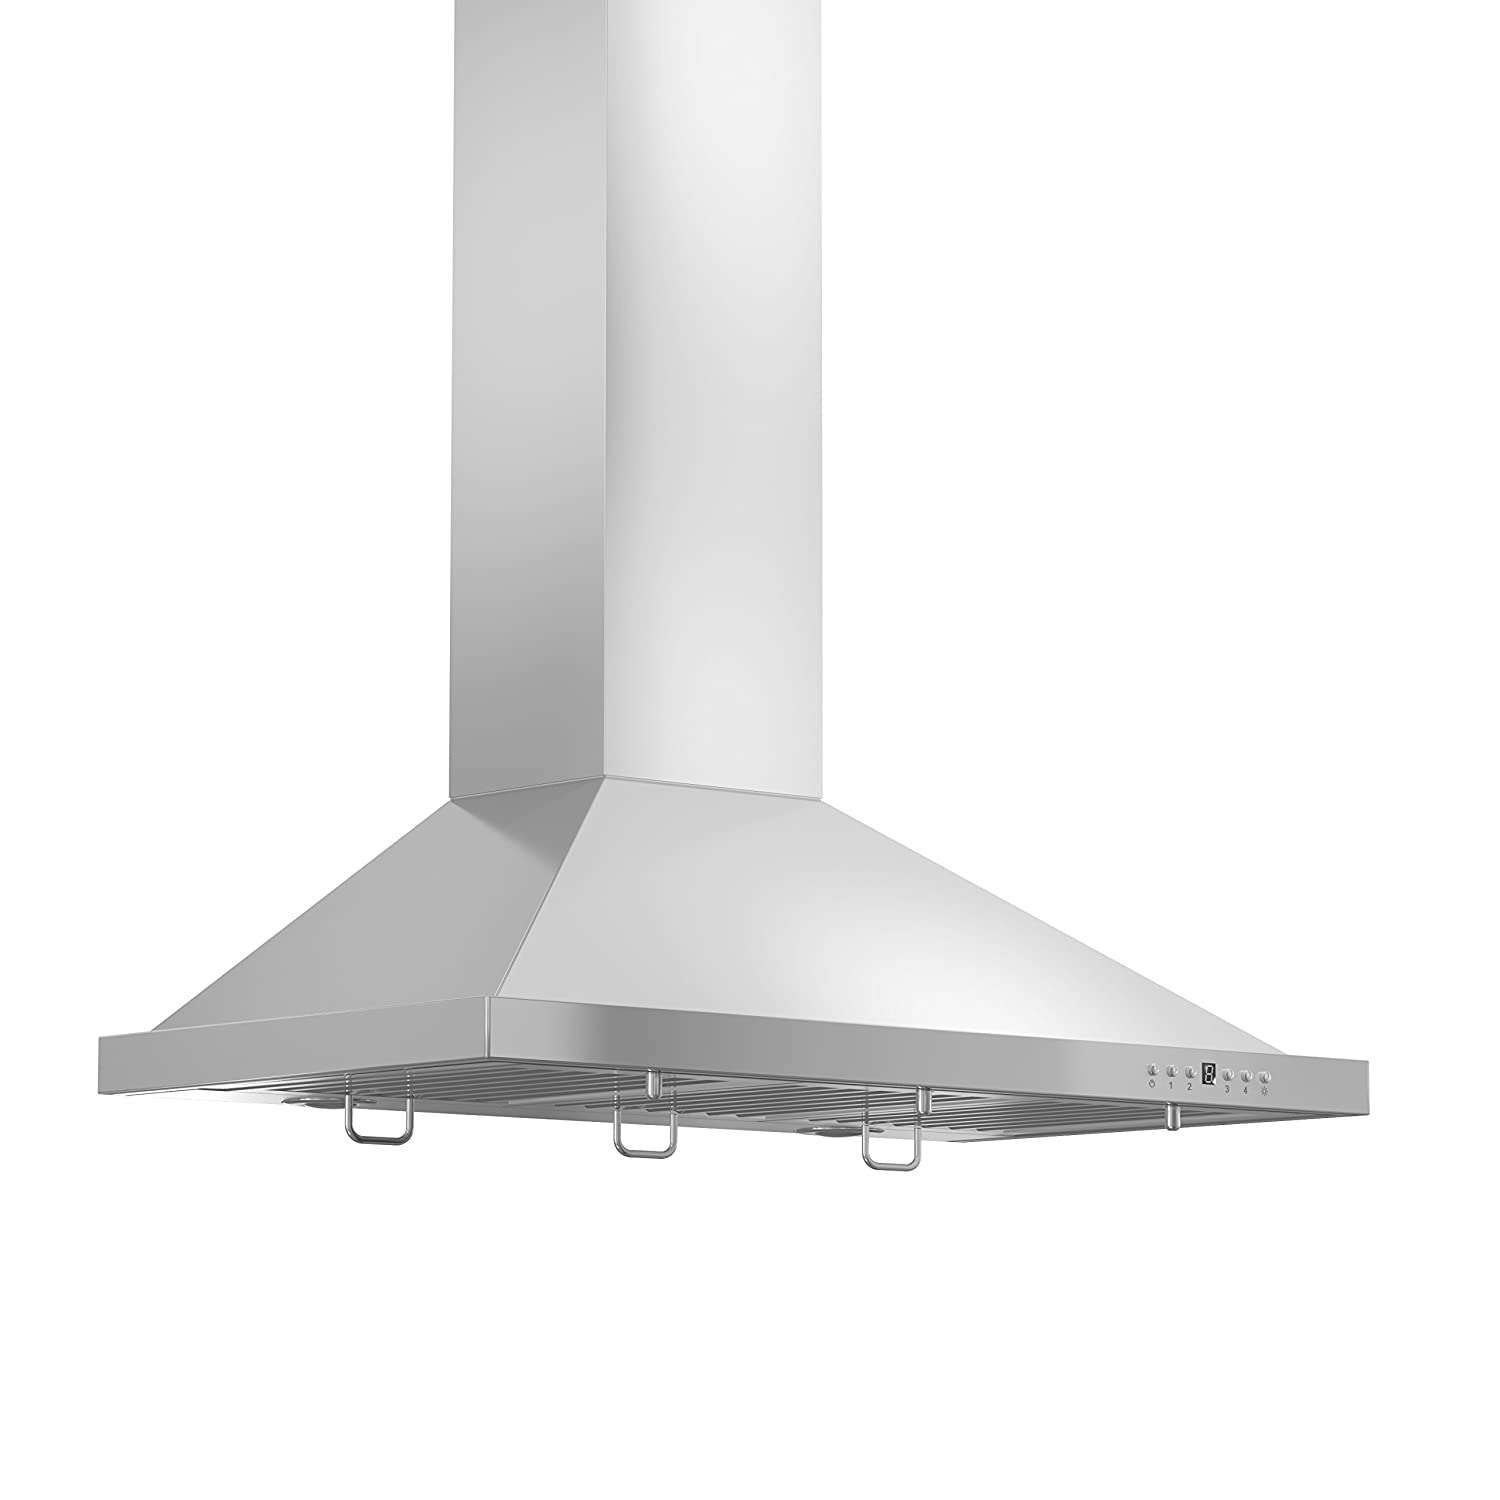 The Best Range Hood 3